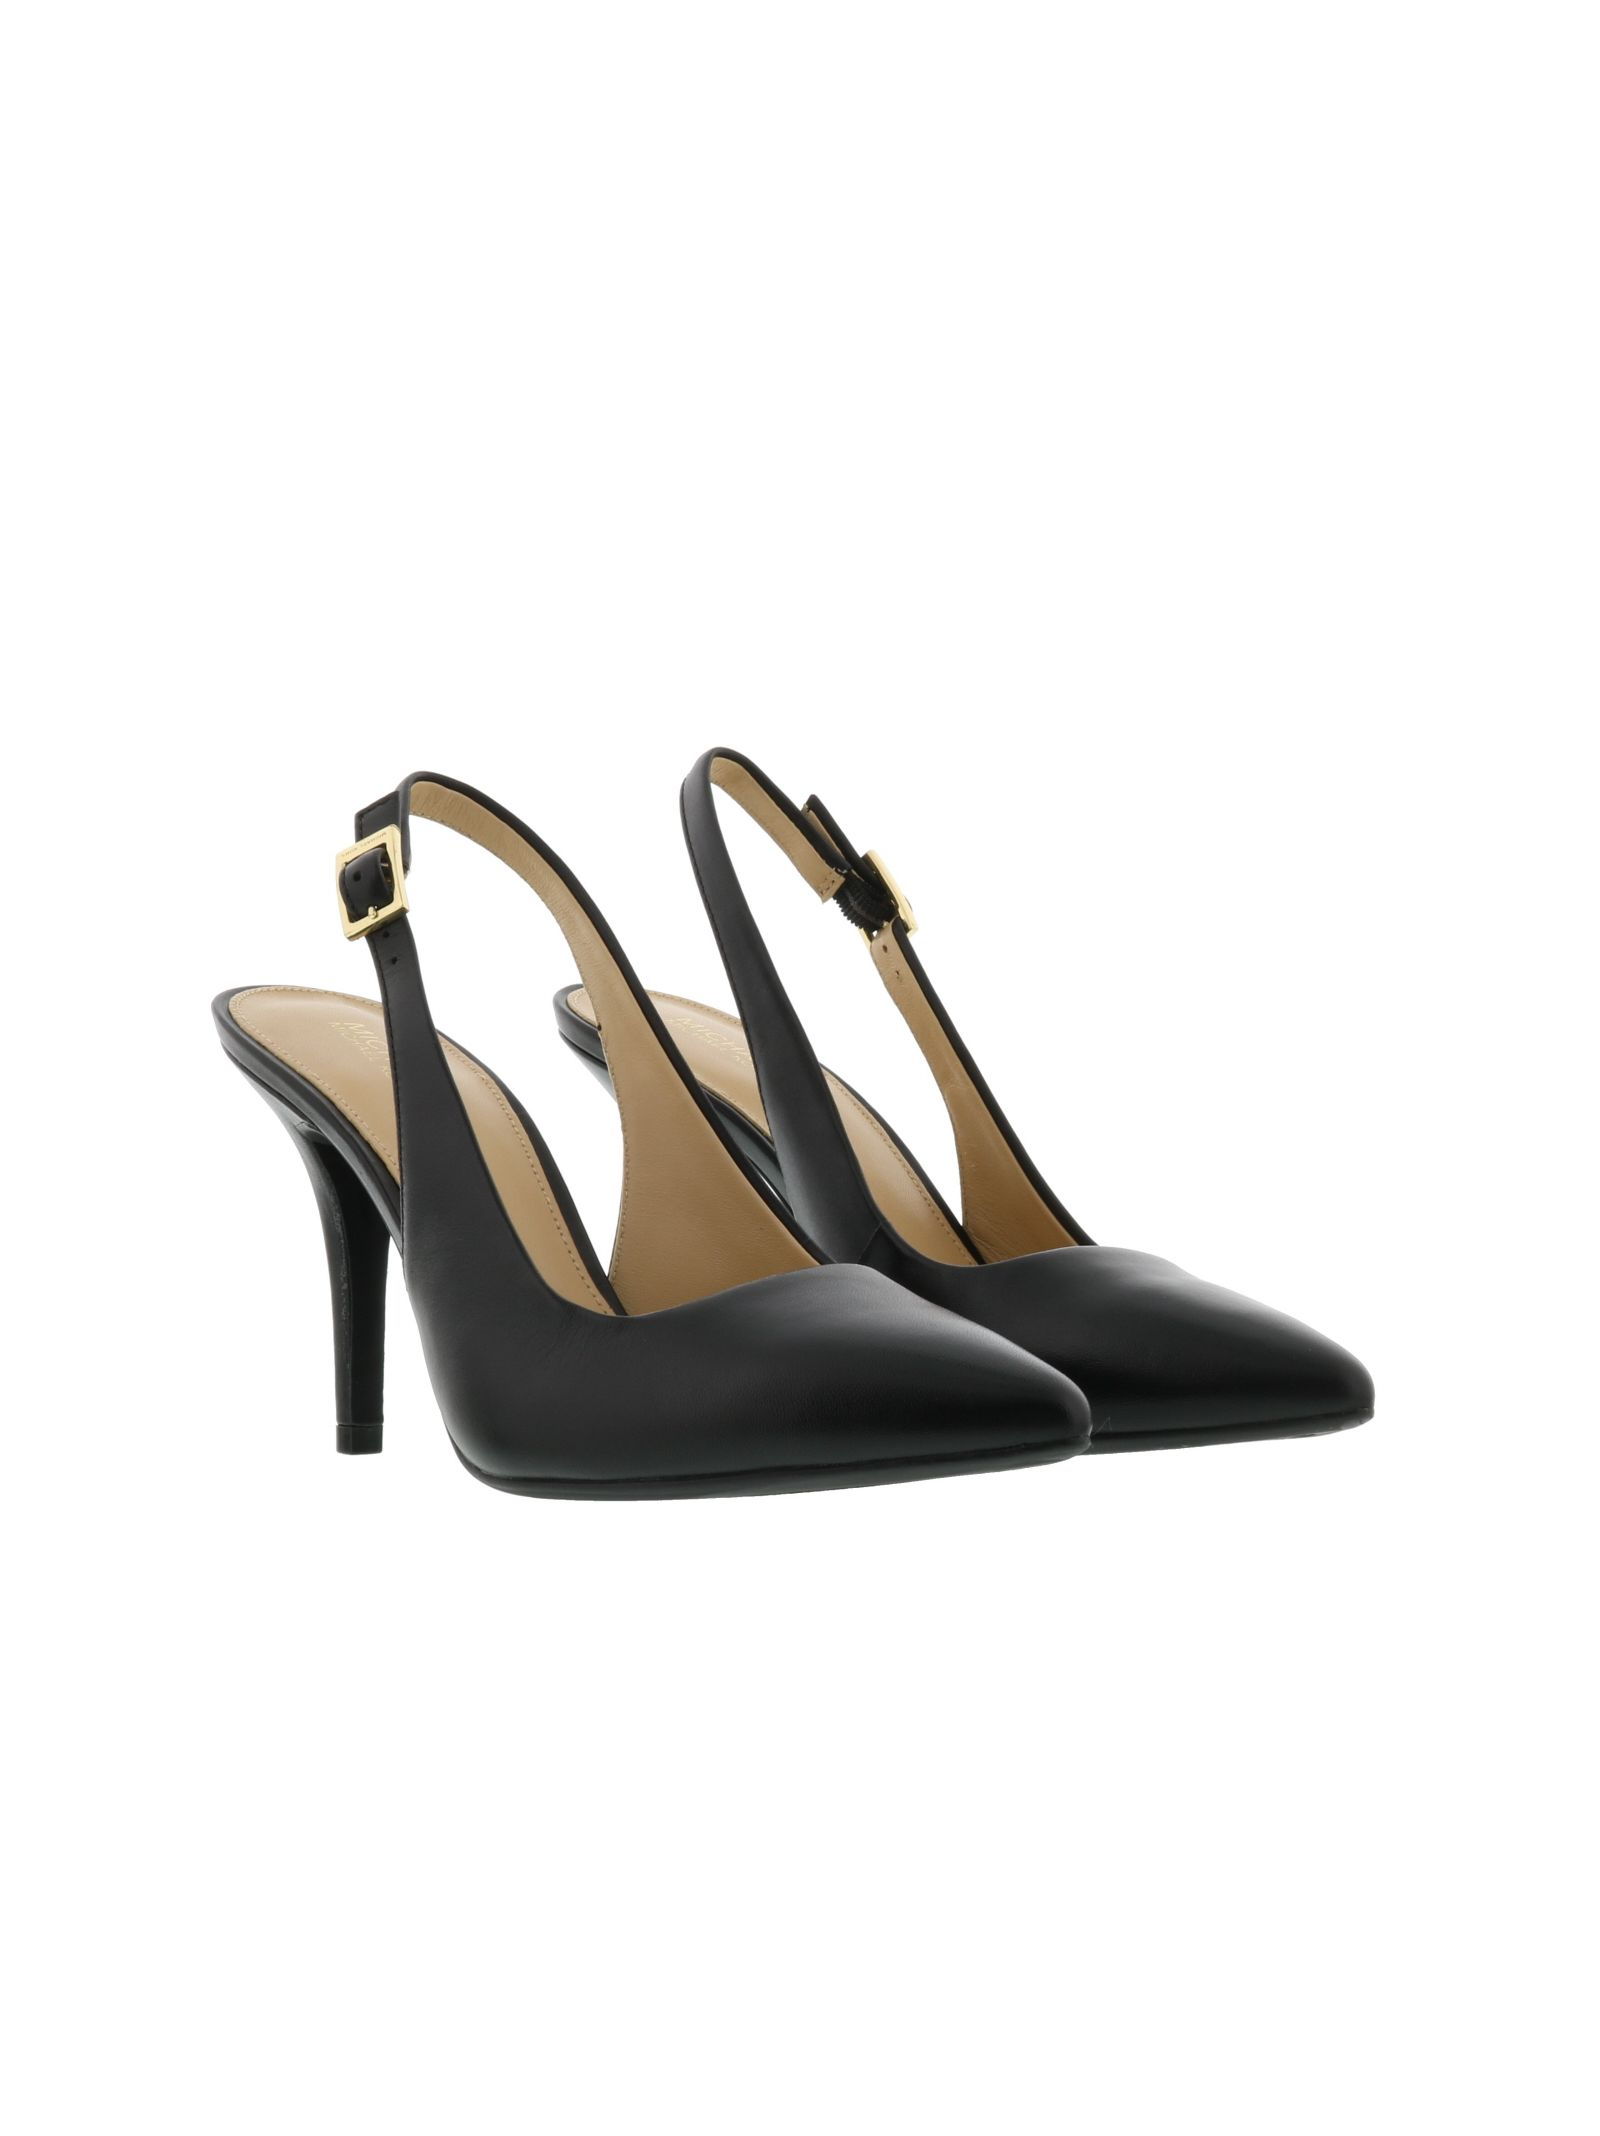 michael kors female michael kors sling pump